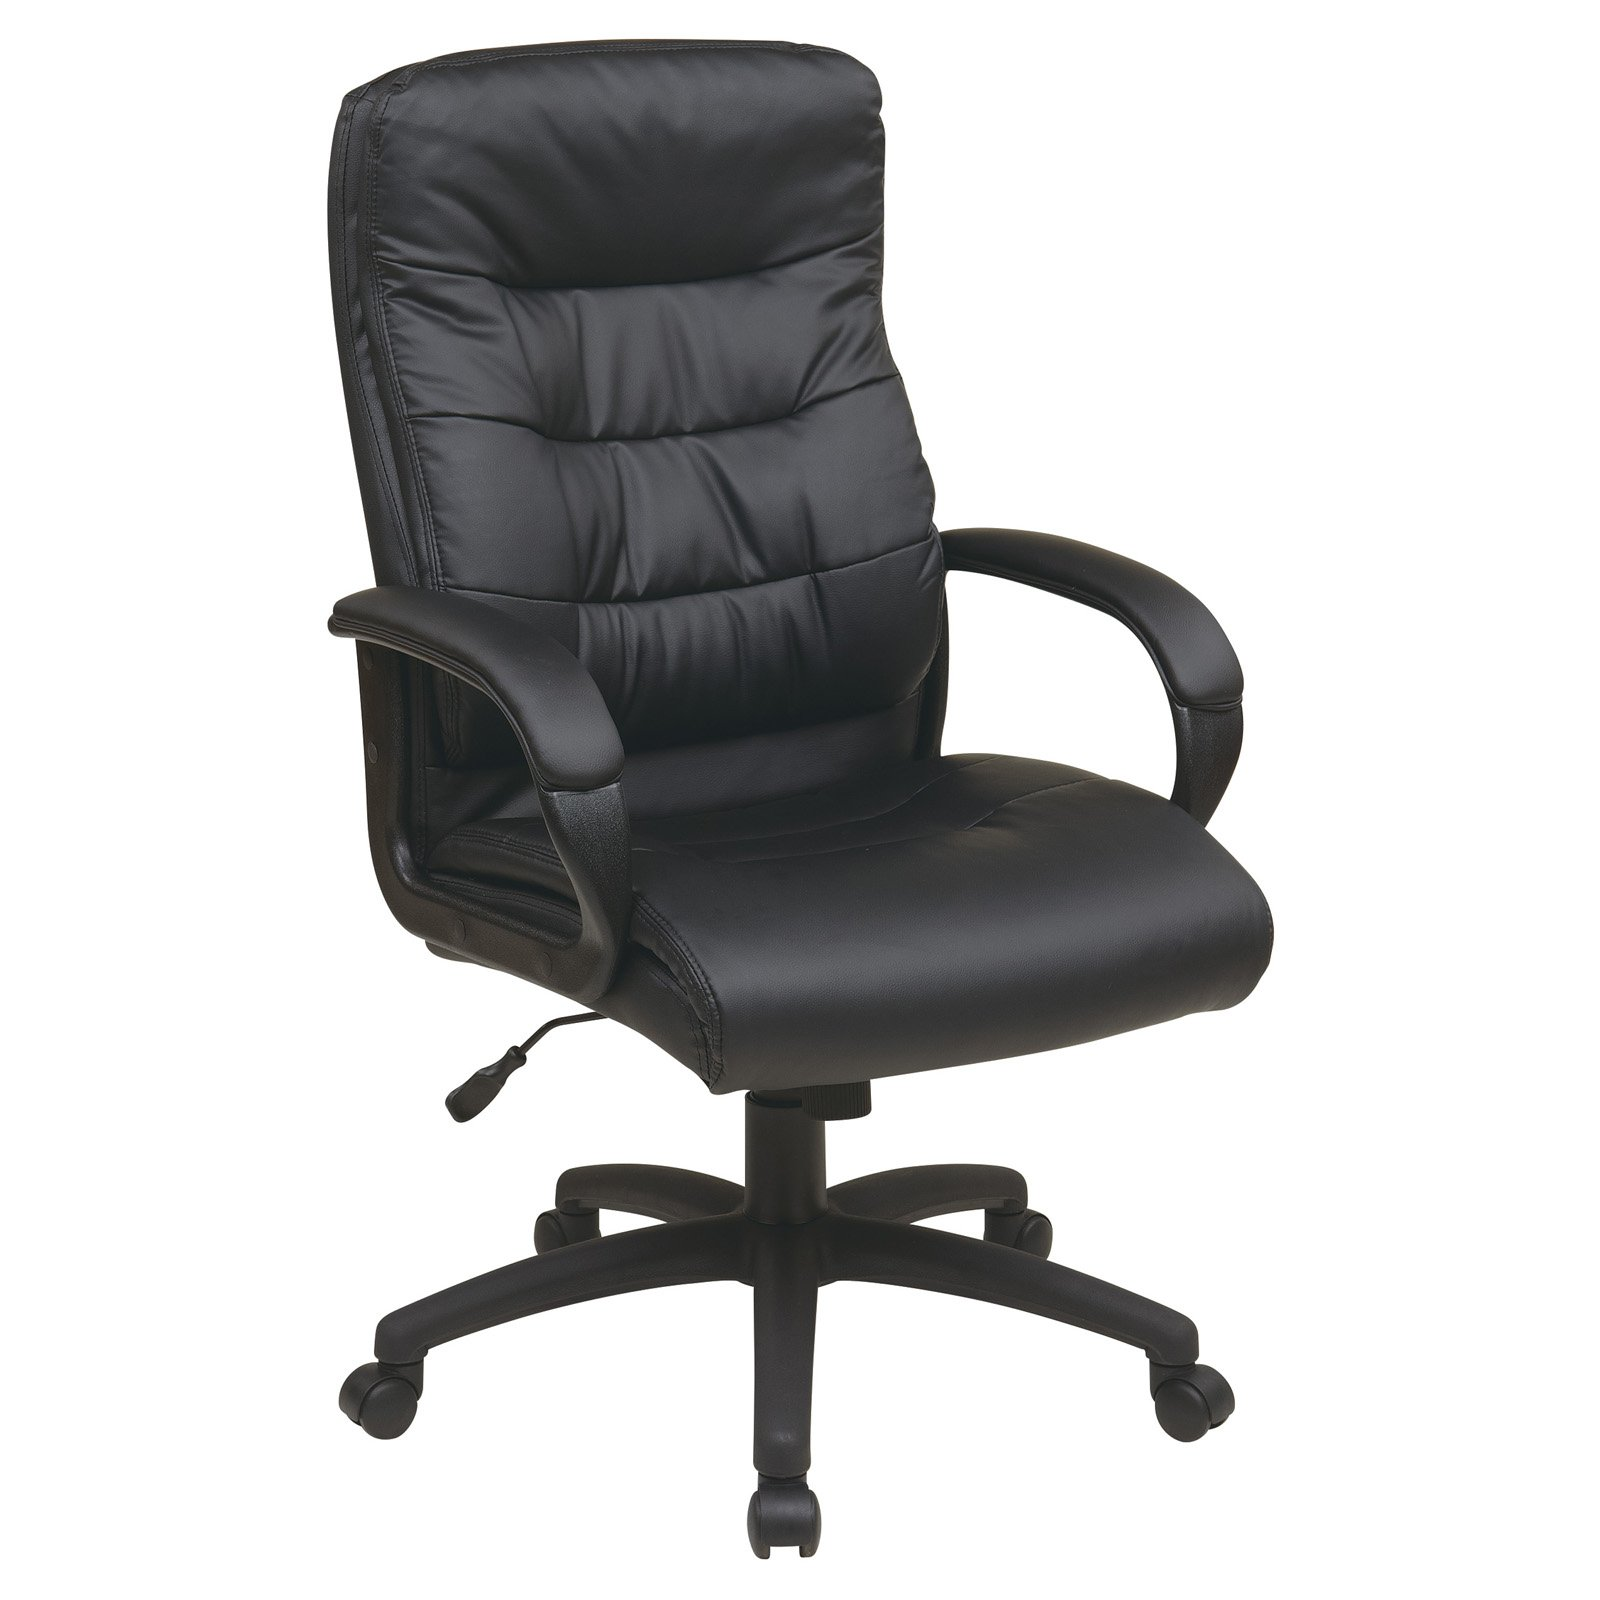 Walmart Chairs: High-Back Faux-Leather Executive Office Chair With Padded